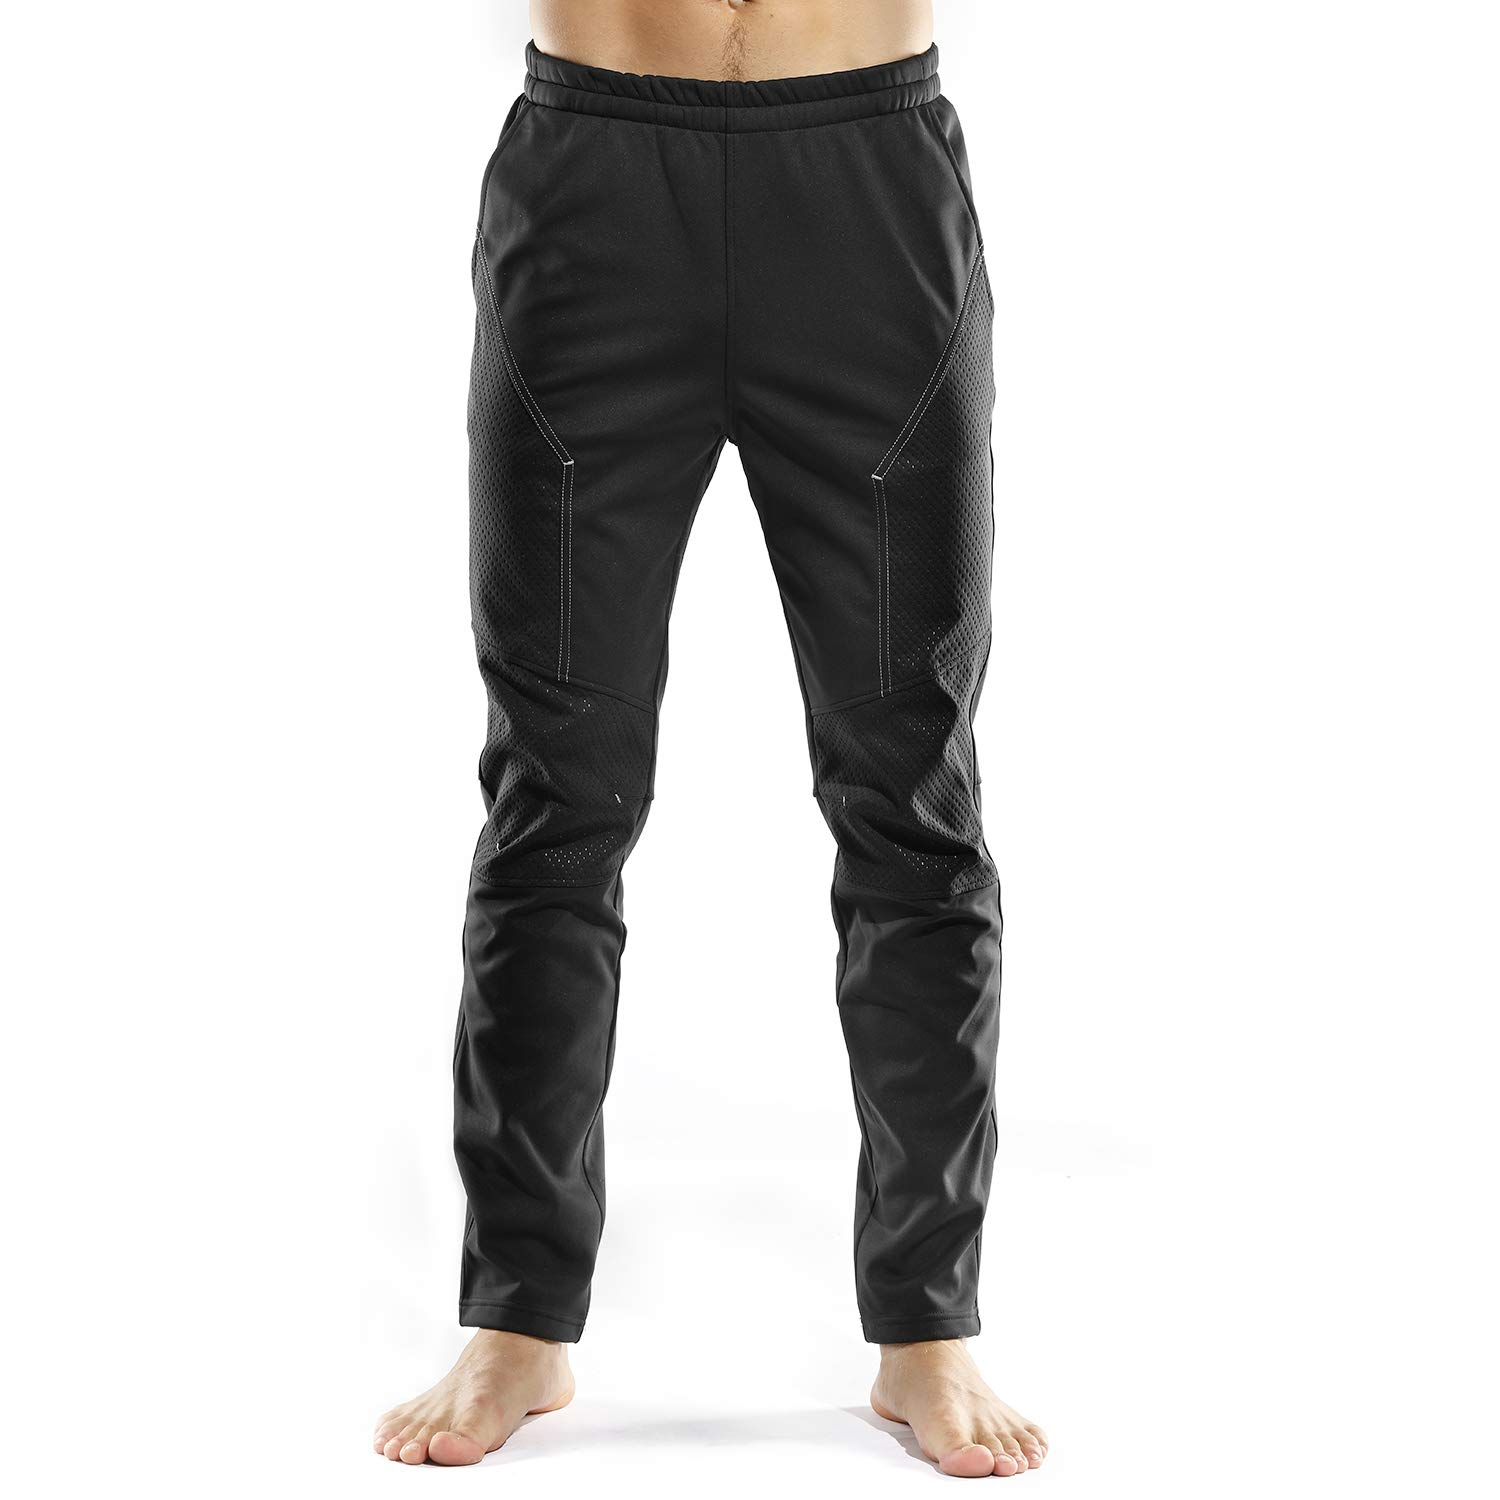 INBIKE Cycling Running Pants Winter Windproof